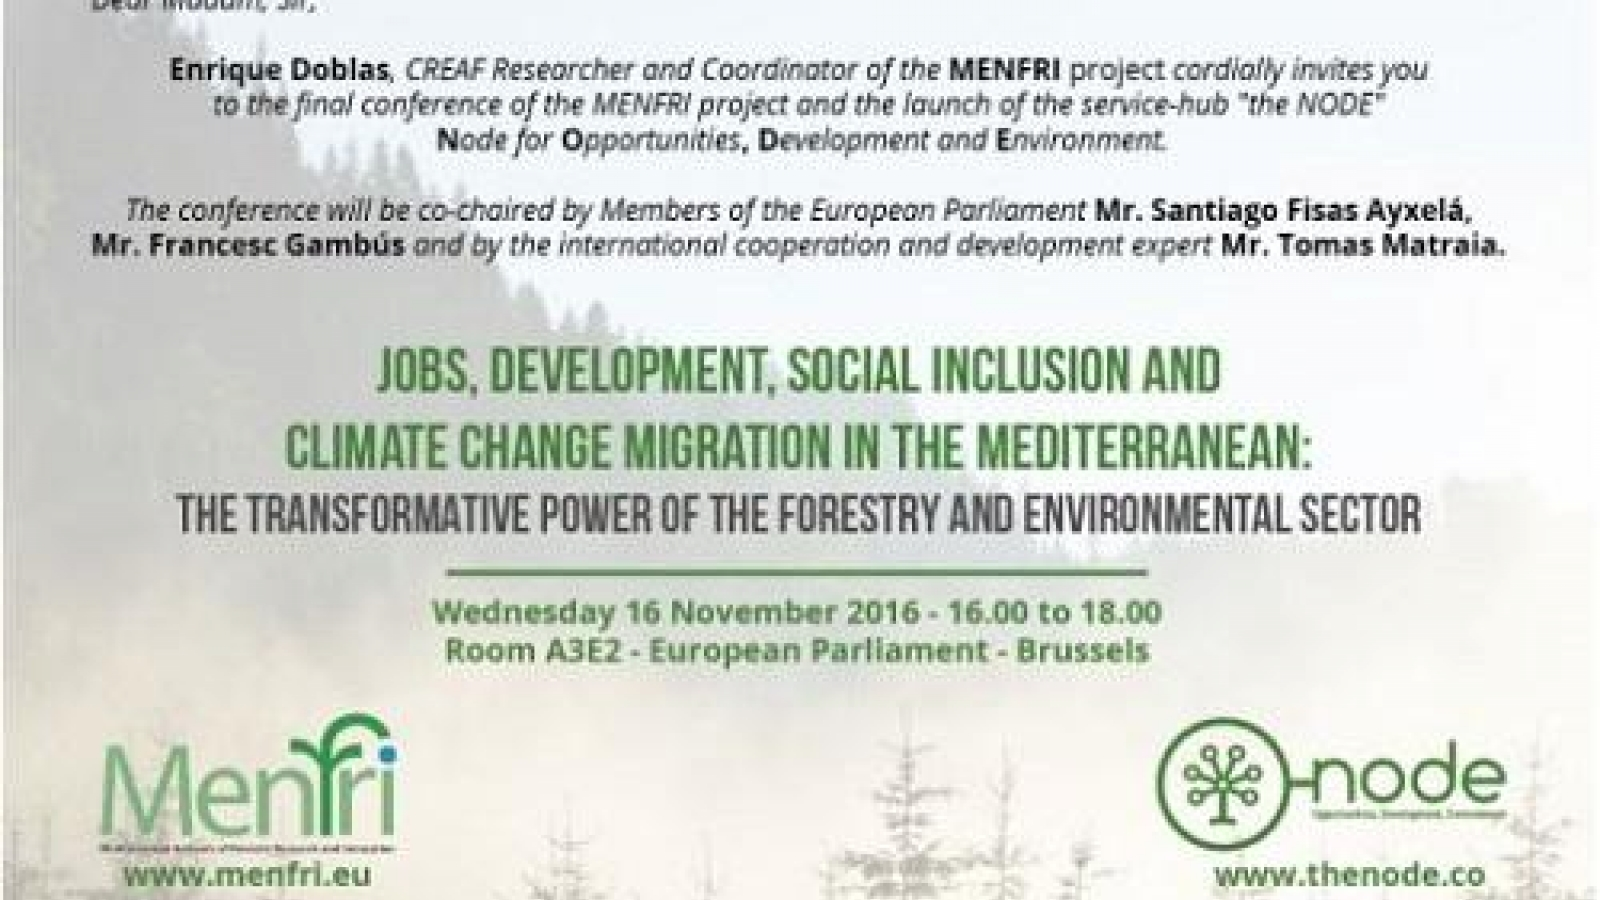 Mediterranean Forest Research Project Concludes With Launch Of Node For Opportunities Development And Environment